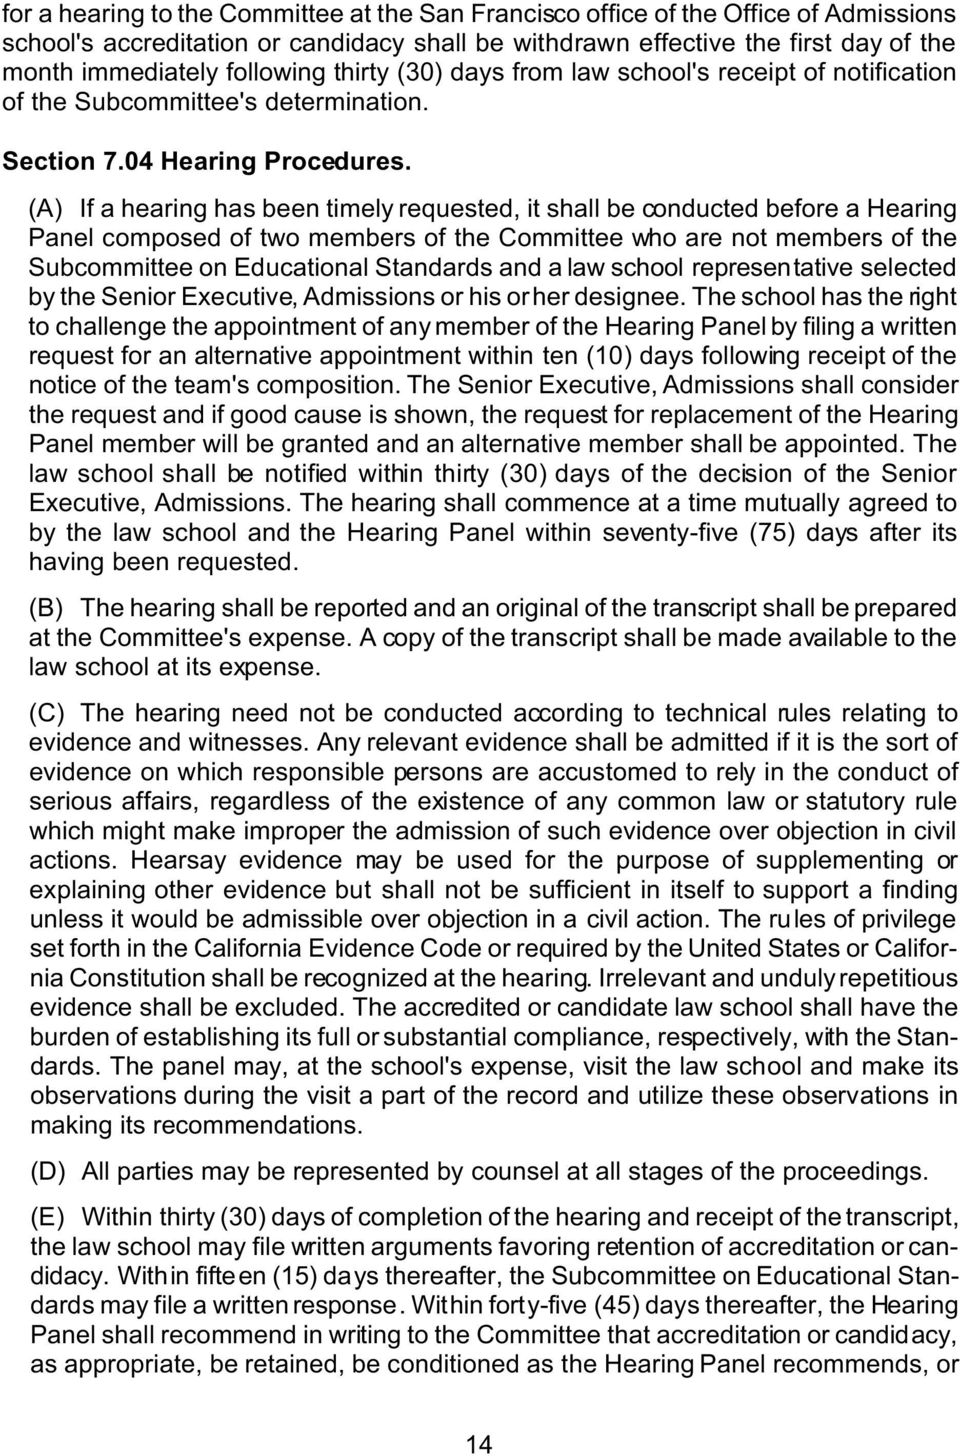 (A) If a hearing has been timely requested, it shall be conducted before a Hearing Panel composed of two members of the Committee who are not members of the Subcommittee on Educational Standards and